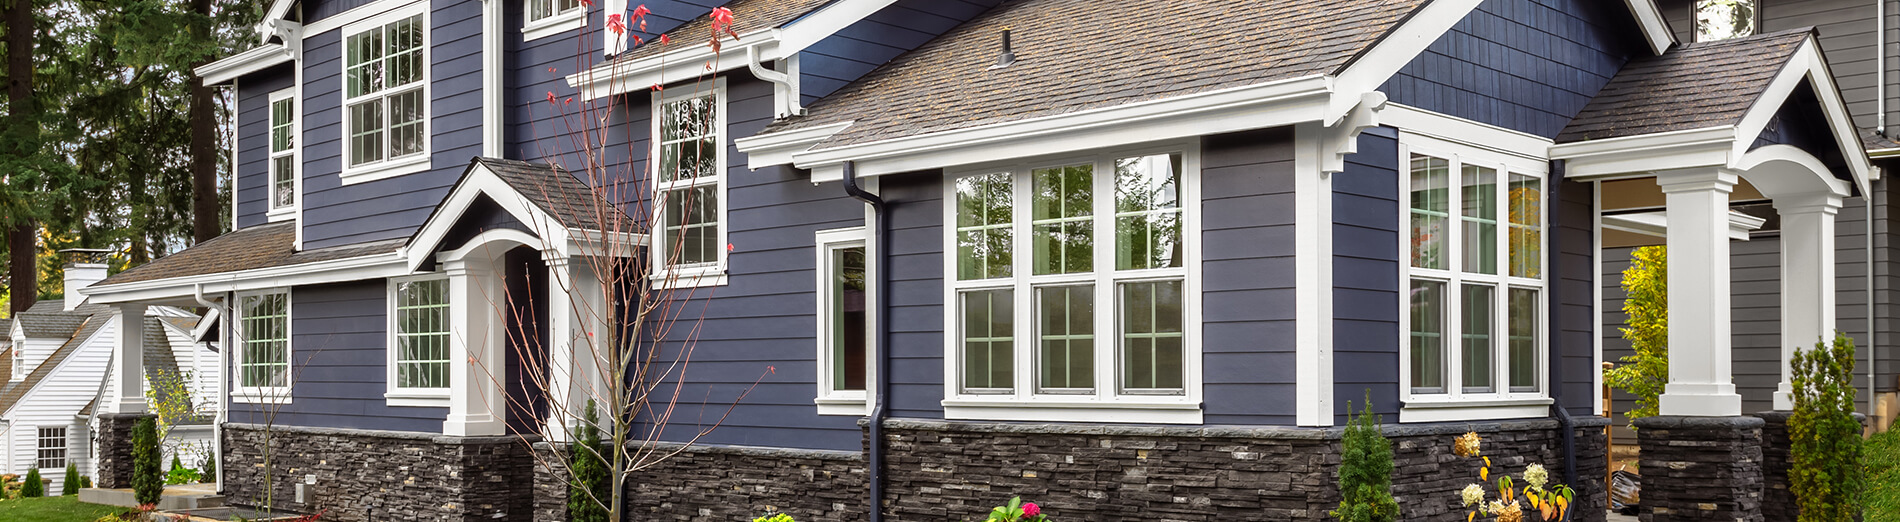 Affordable Exteriors - Services